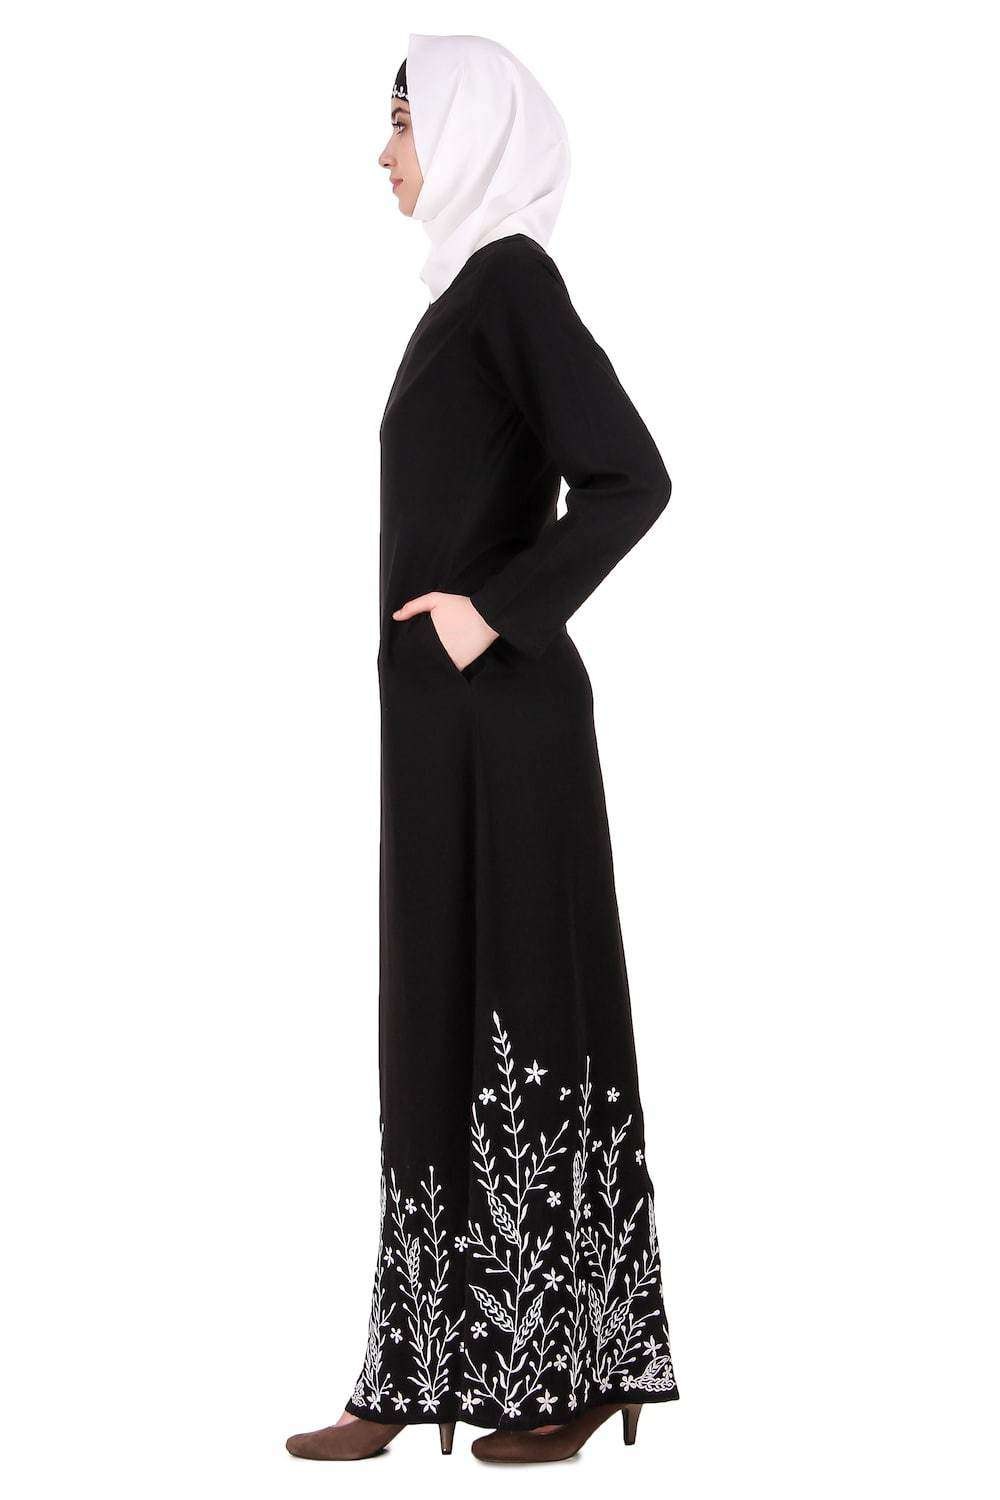 Descending Leaf Pattern Embroidered Abaya Side